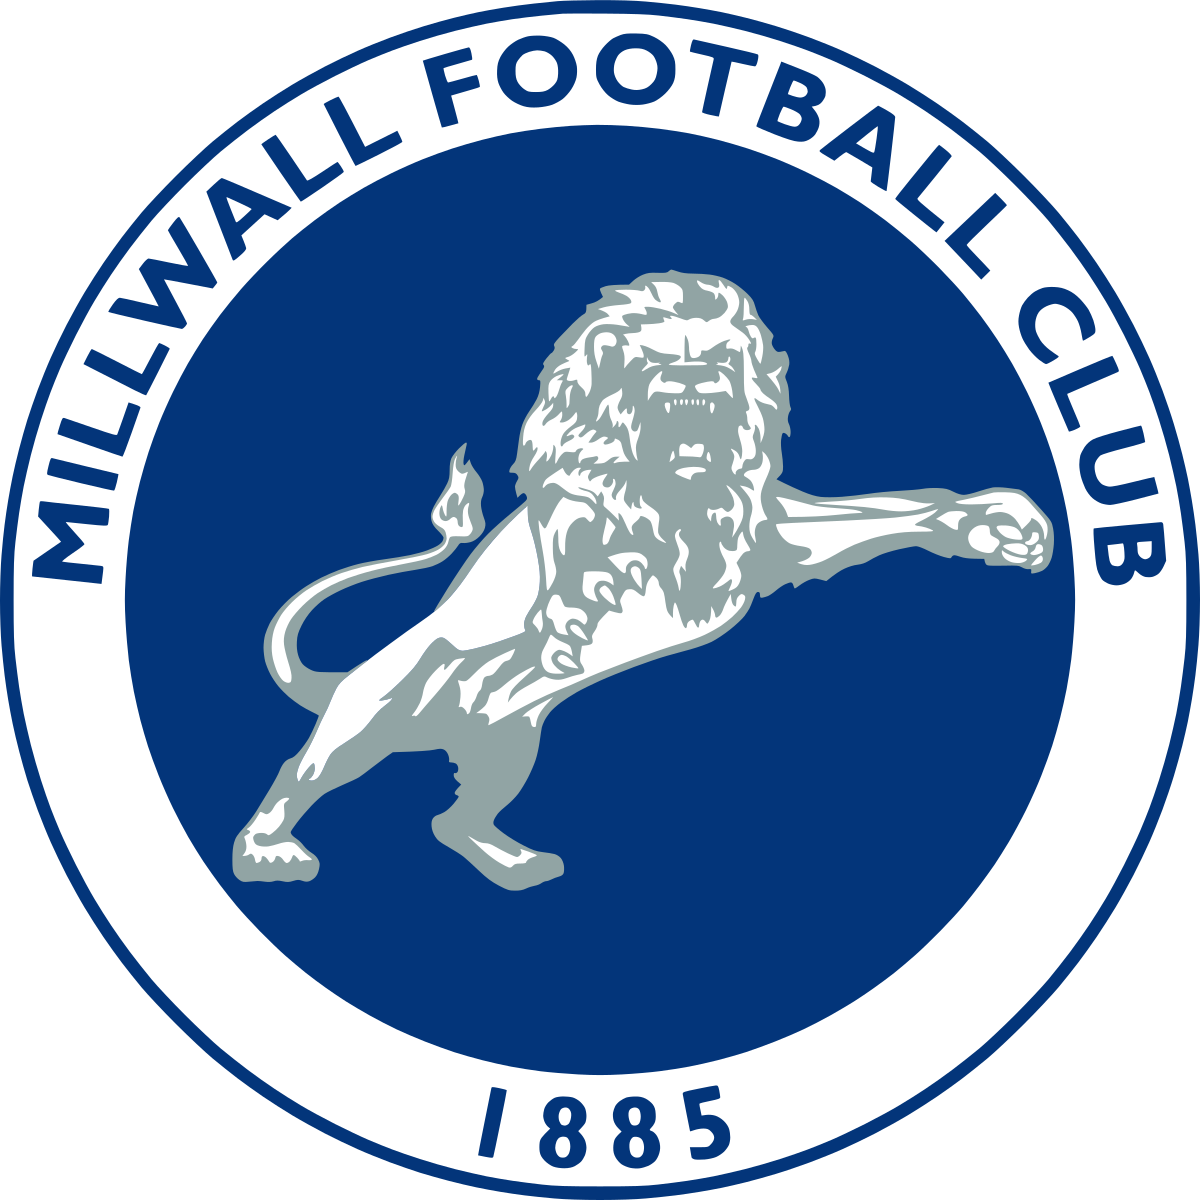 GeniusURL.com Proud Official Club Partner of Millwall Football Club 2020 - 2021